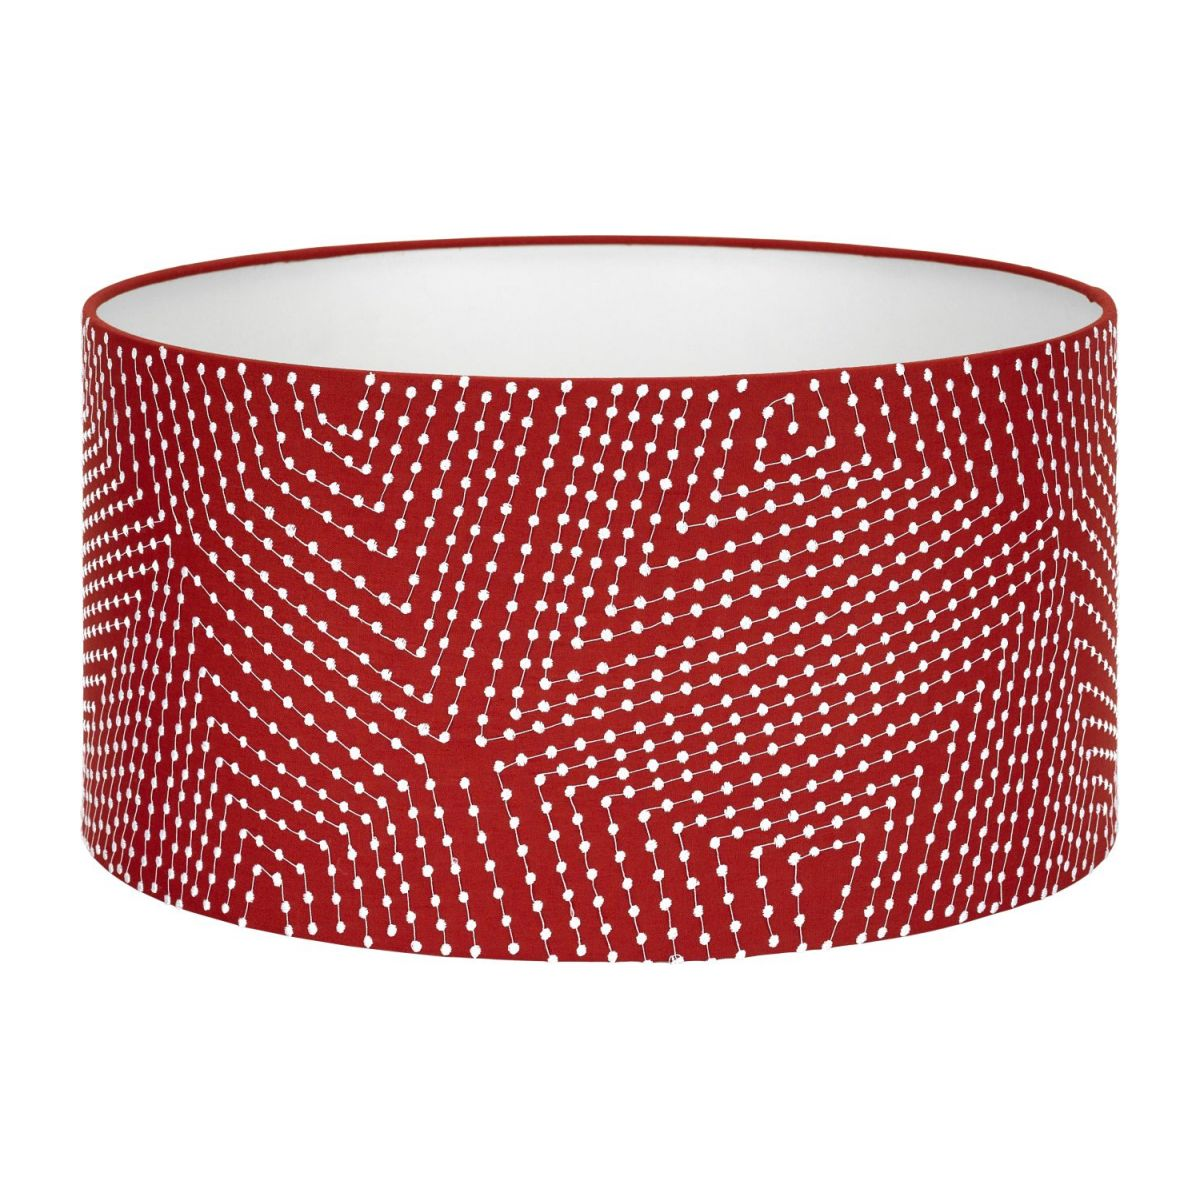 Lampshade 35cm, red with white patterns n°1